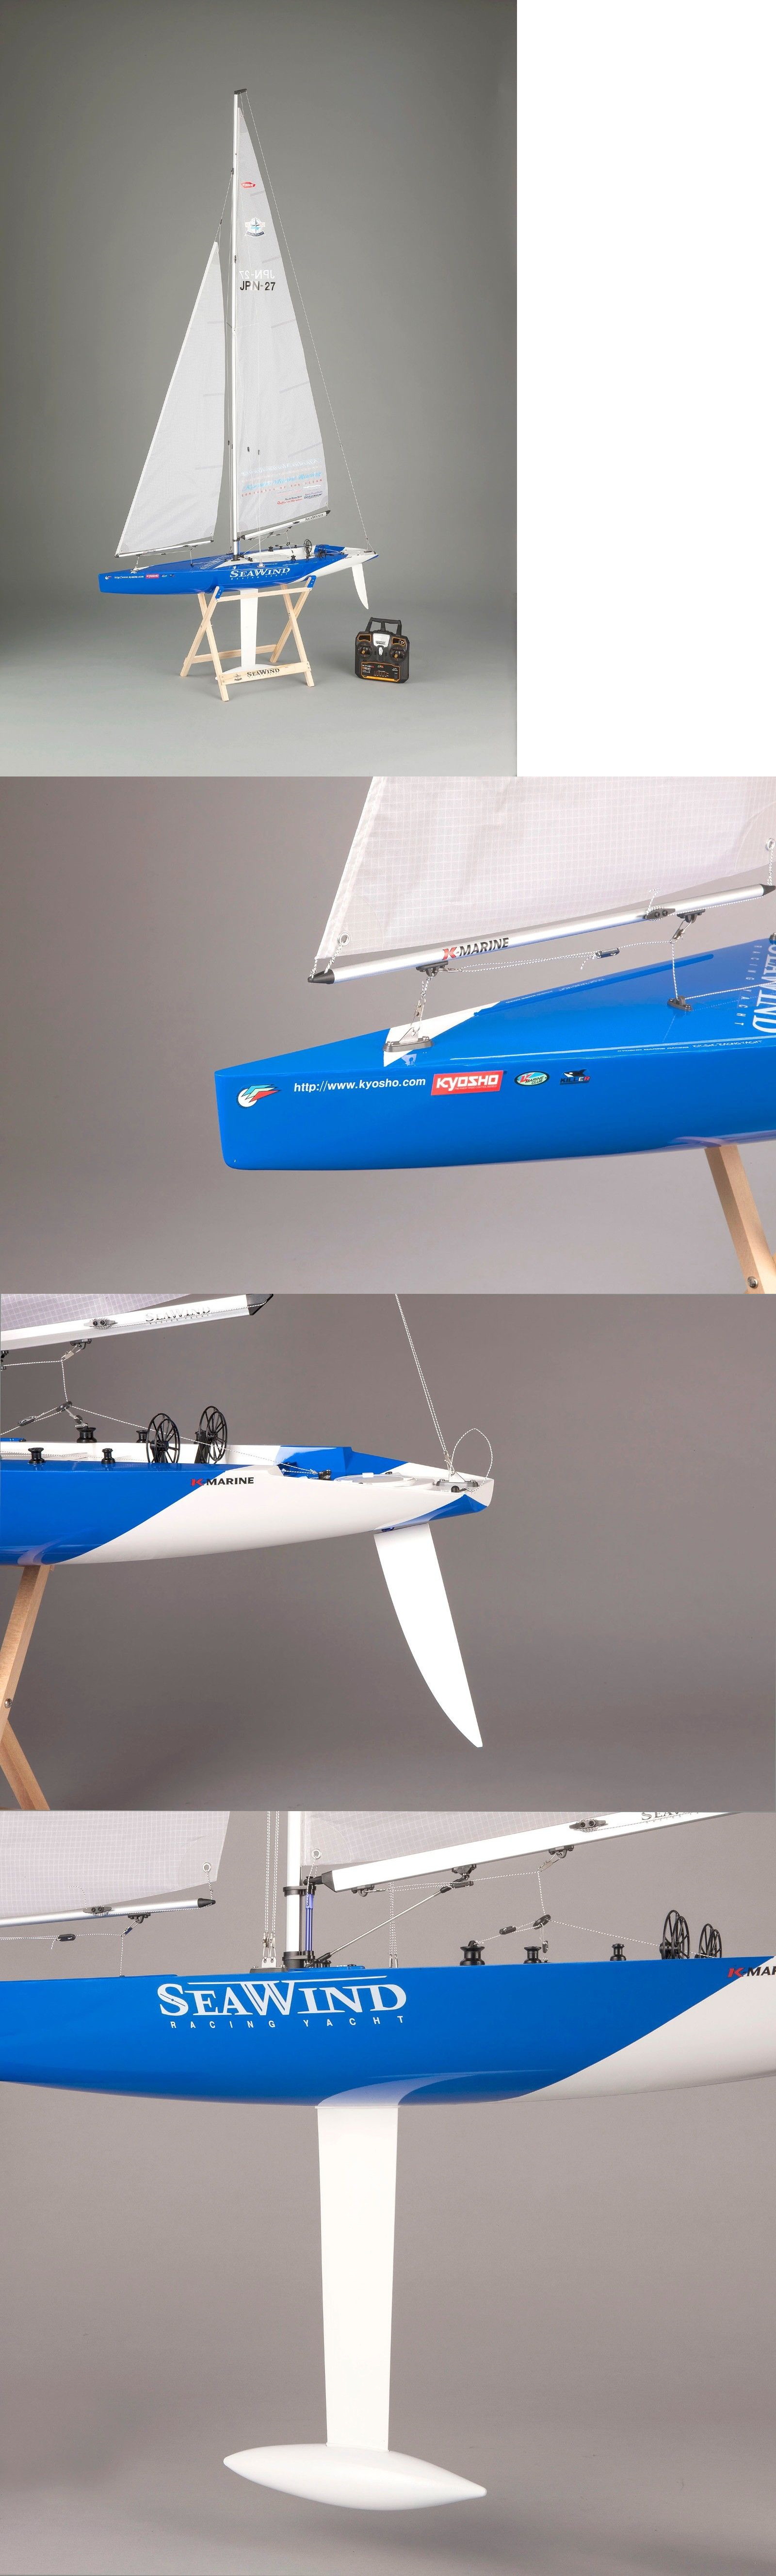 Boats and Watercraft 87480: Kyosho Seawind Ready-To-Sail 1-Meter Rc